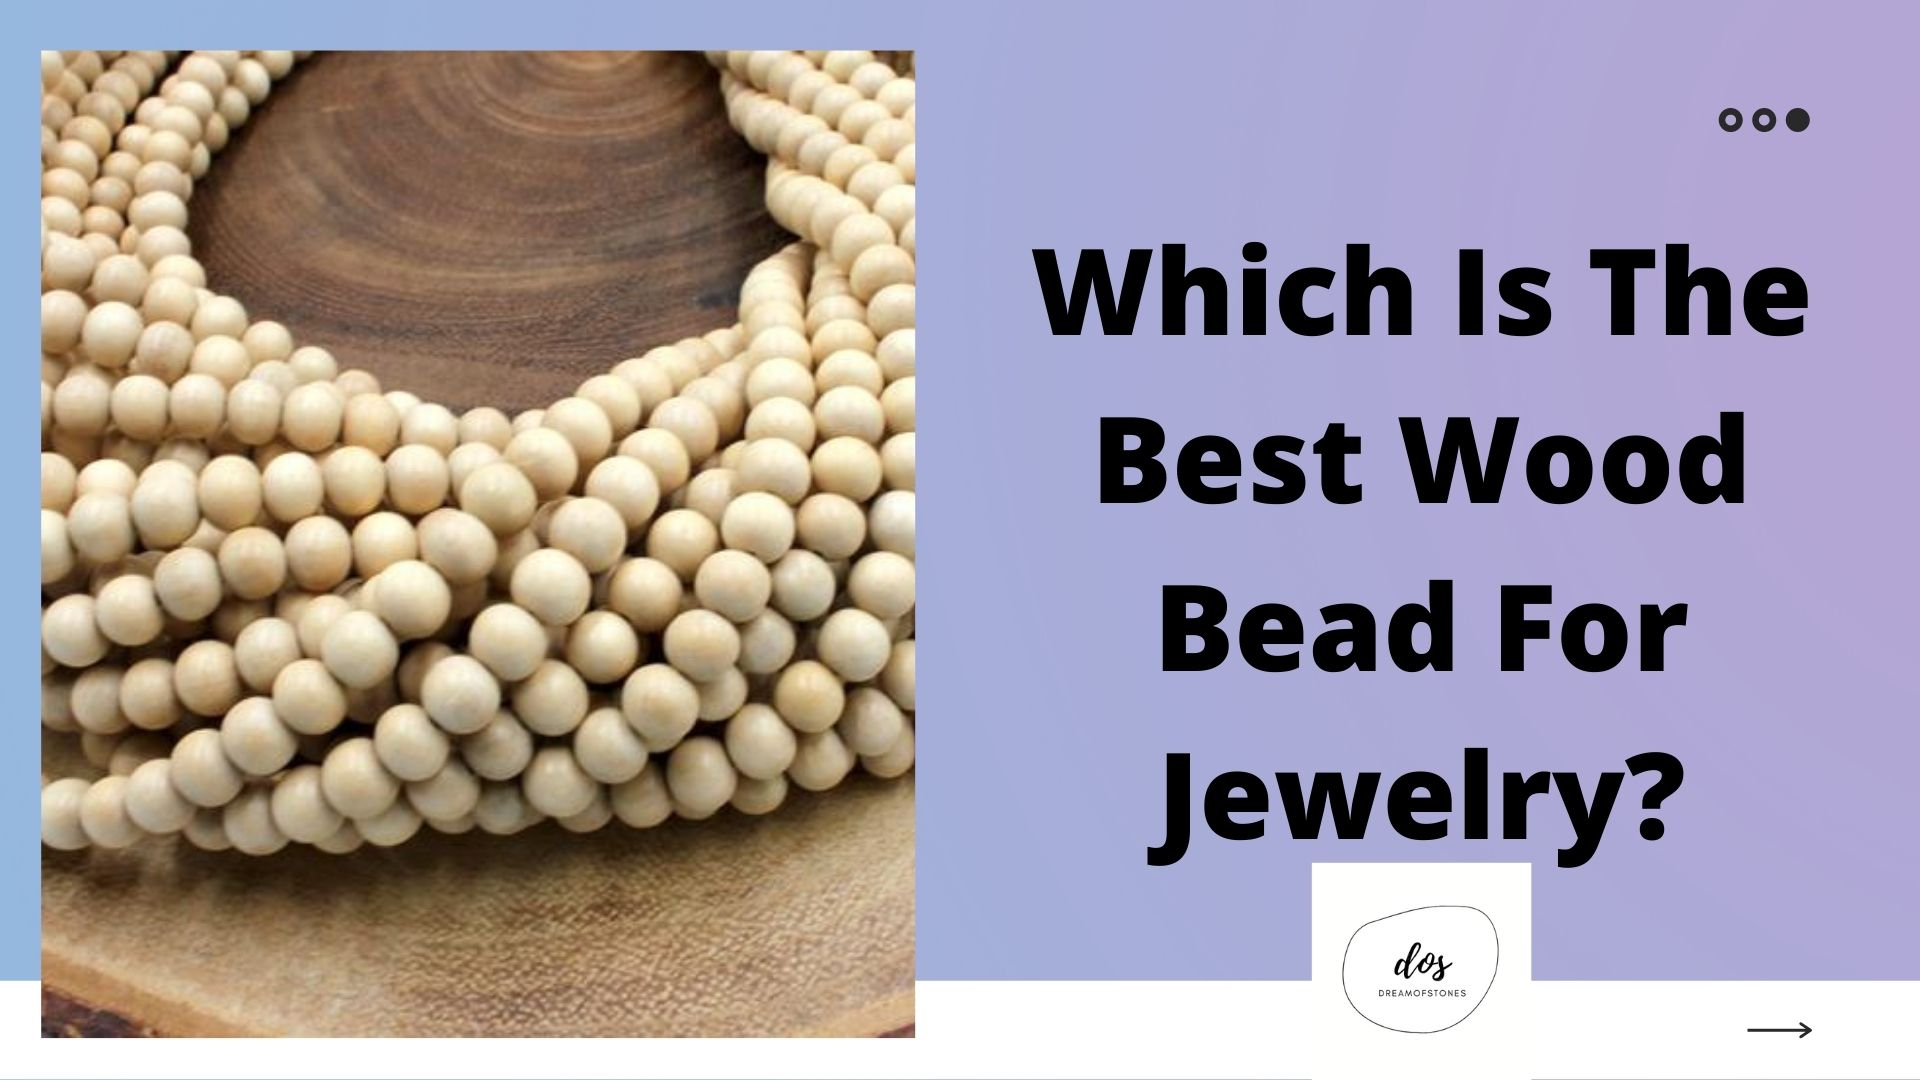 Which Is The Best Wood Bead For Jewelry